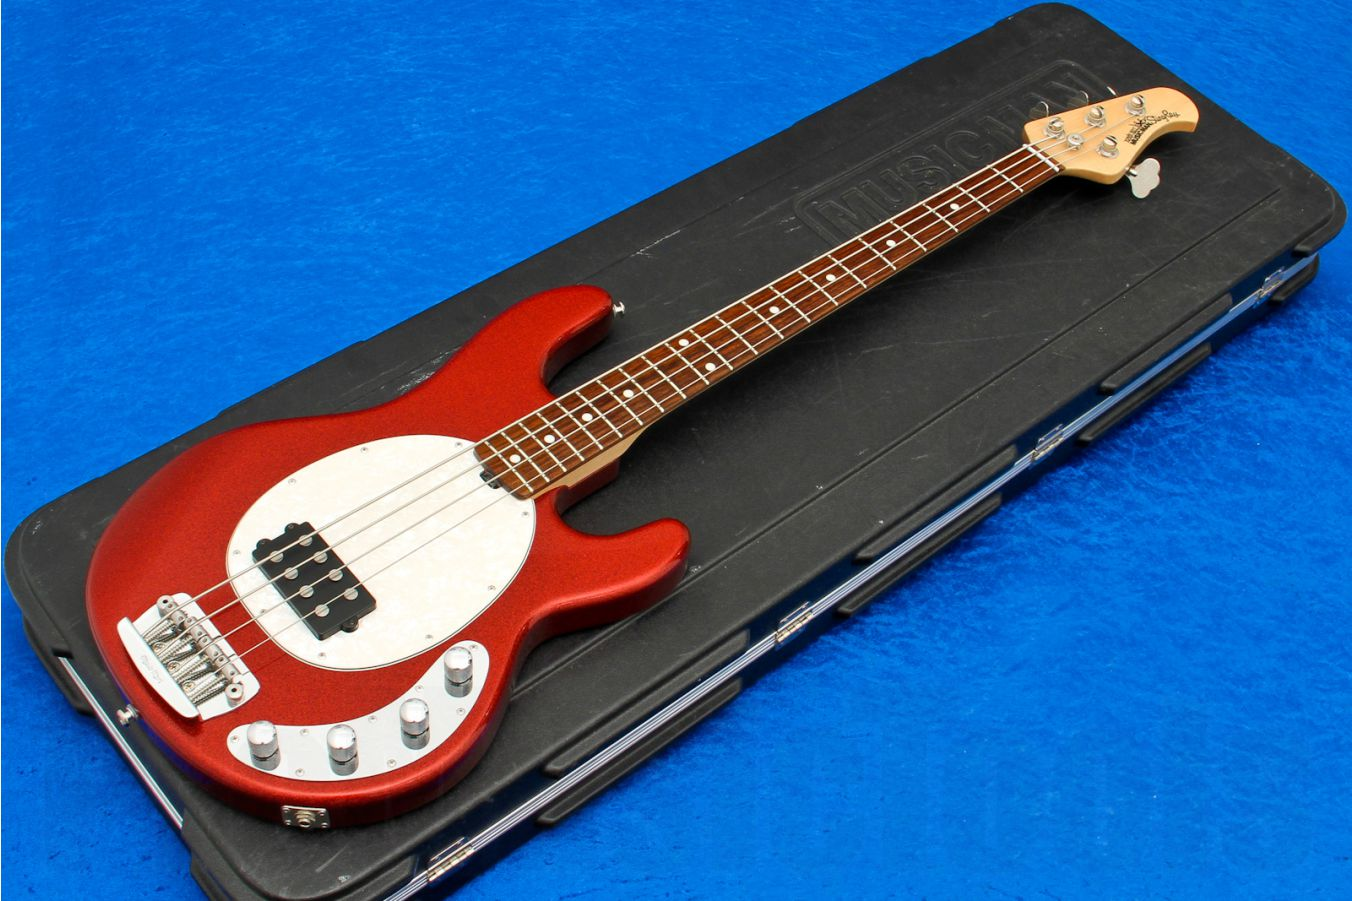 Music Man USA Stingray 4 RS - Red Sparkle RW Limited Edition